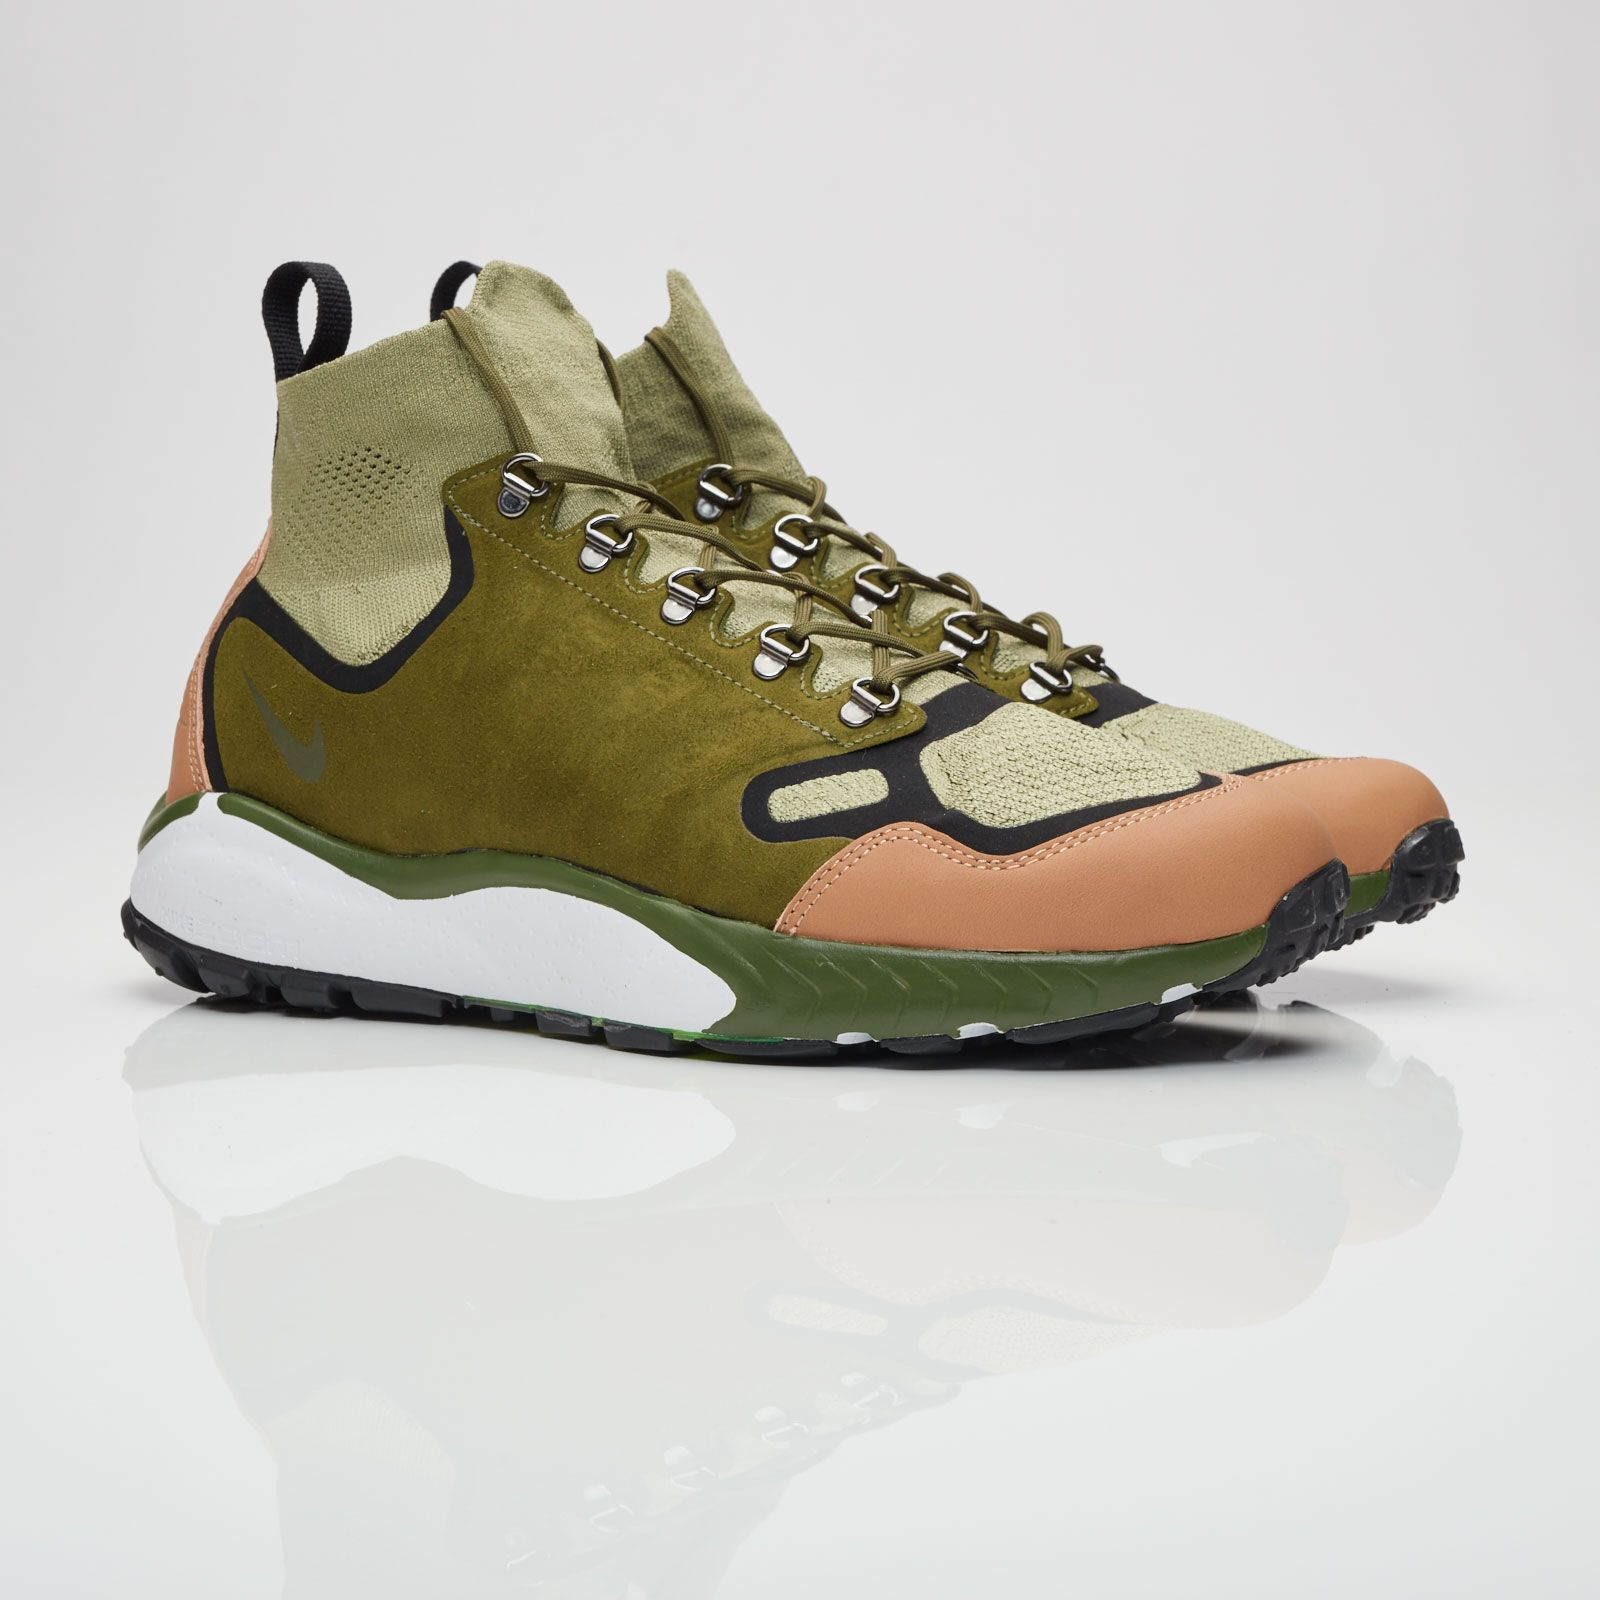 wholesale dealer 5f575 d90fa Nike Air Zoom Talaria Mid Fk Premium